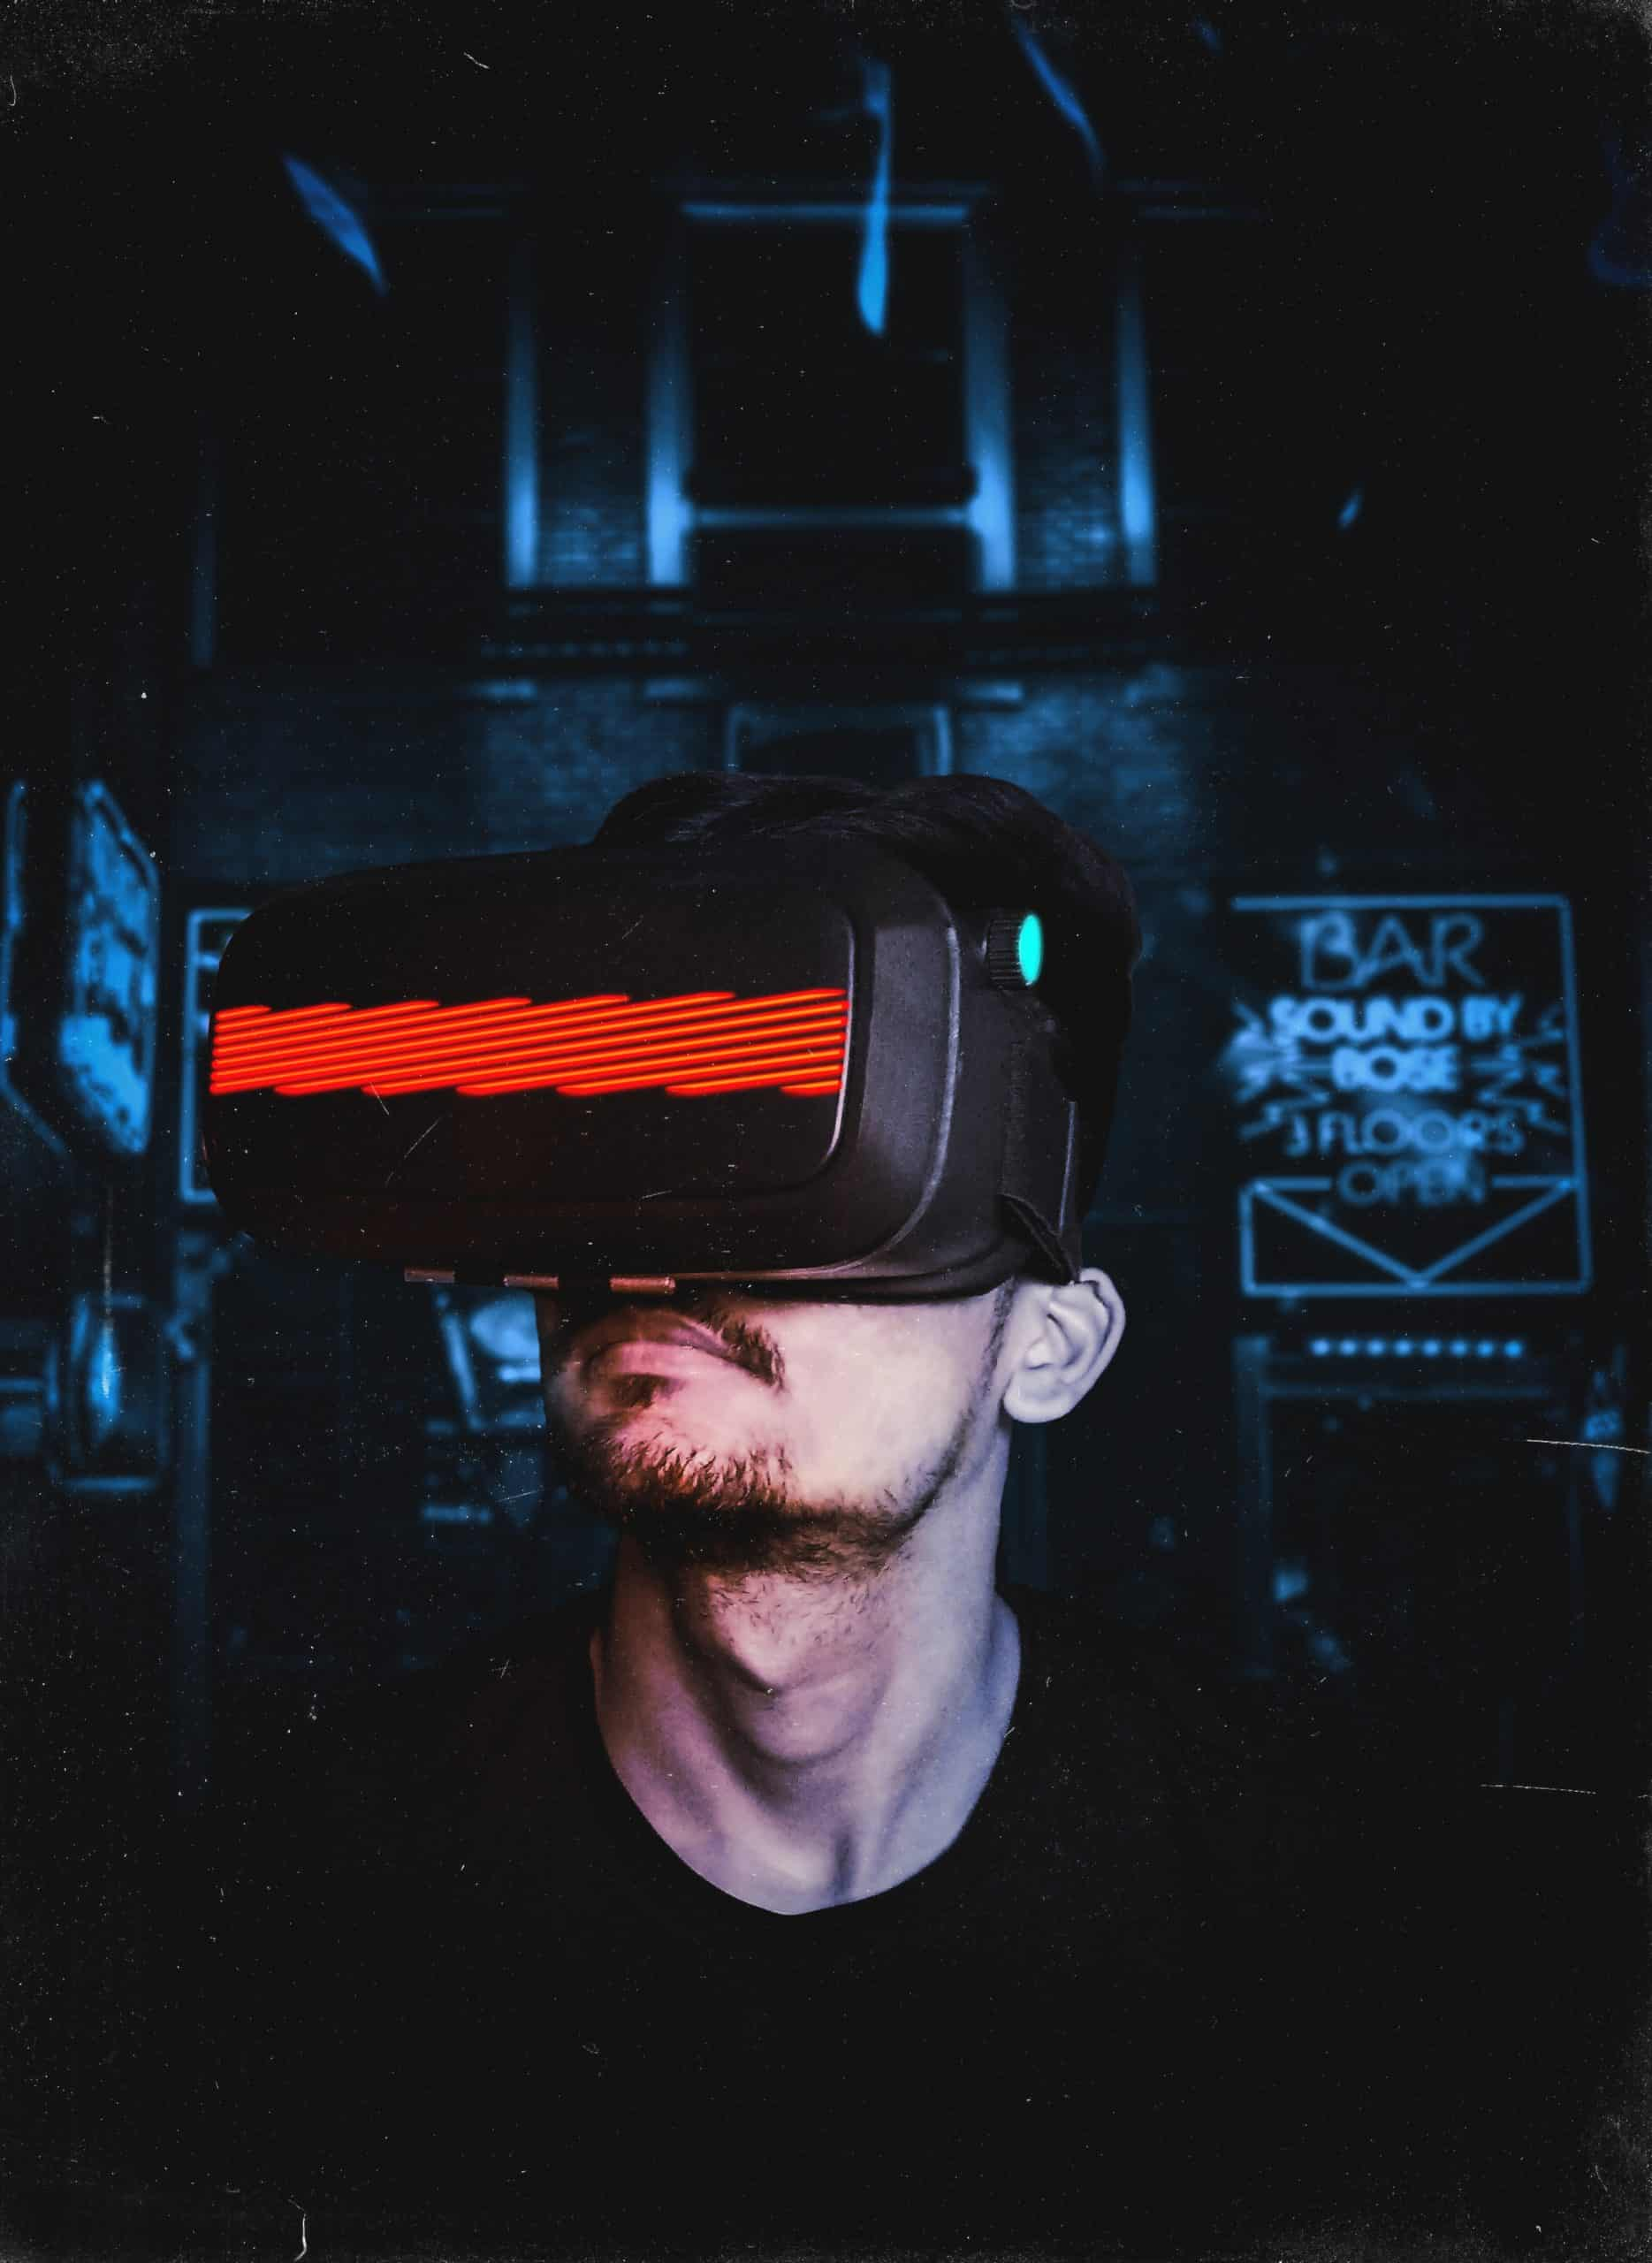 How To Choose The Best Steam VR Games